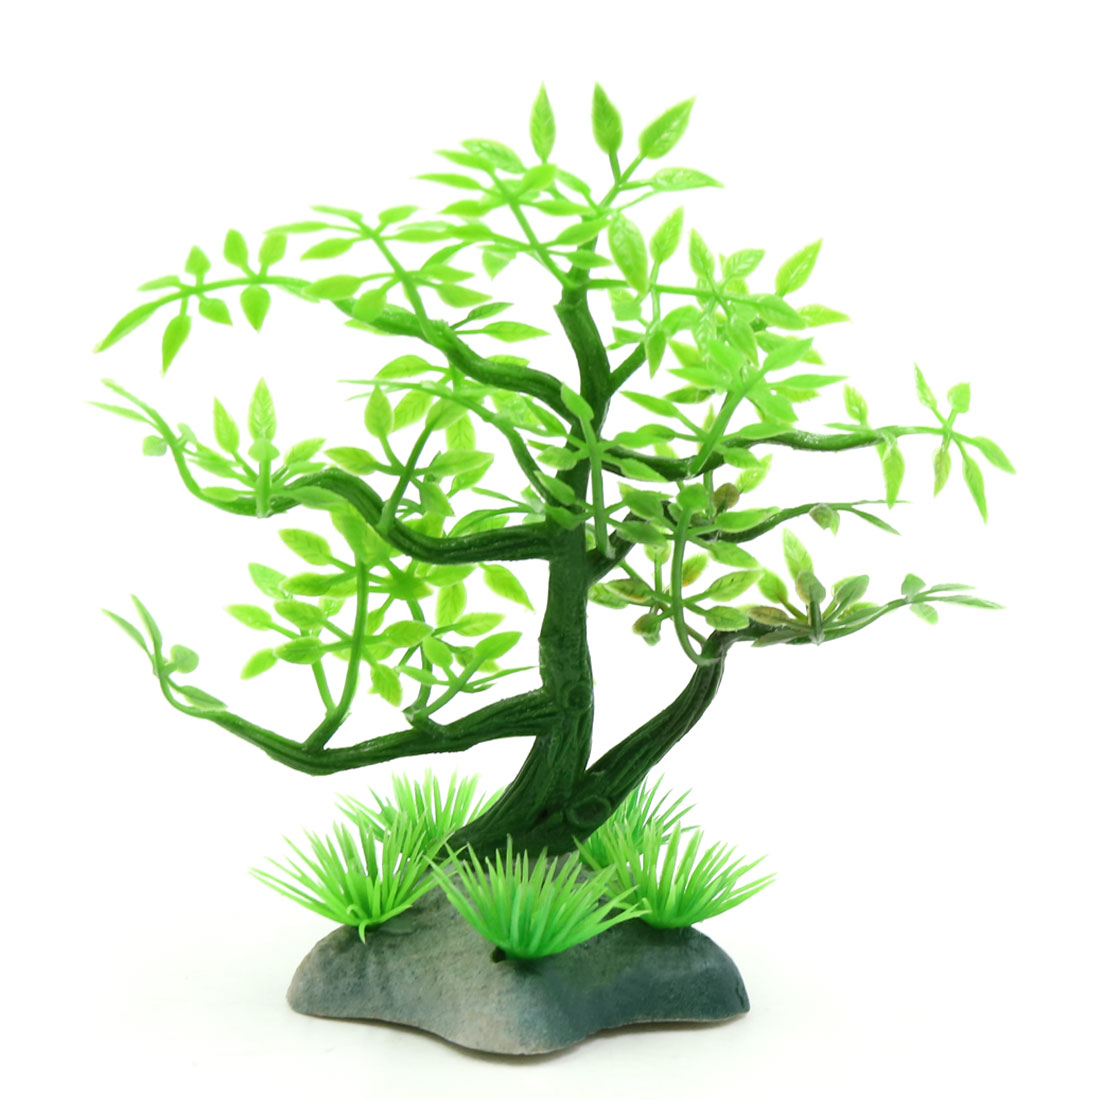 Plastic Mini Lifelike Tree Aquarium Fish Tank Fishbowl Landscape Decor w/ Stand